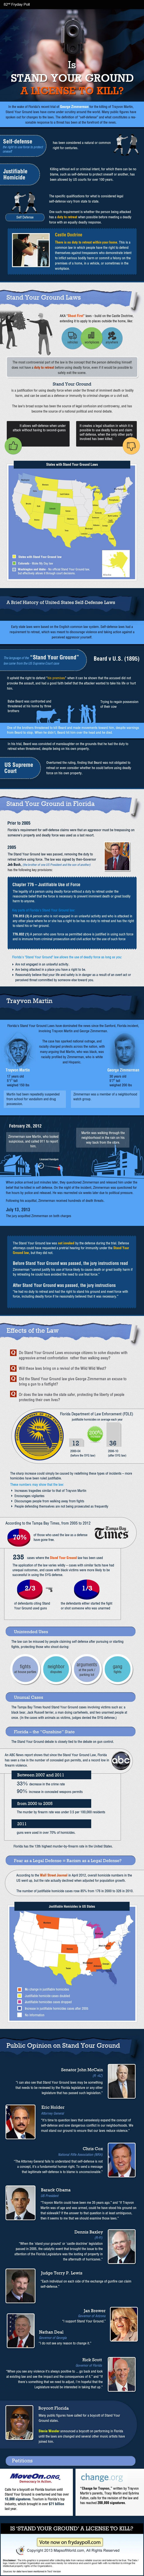 Info Graphic Review About The Controversial Stand Your Ground Law